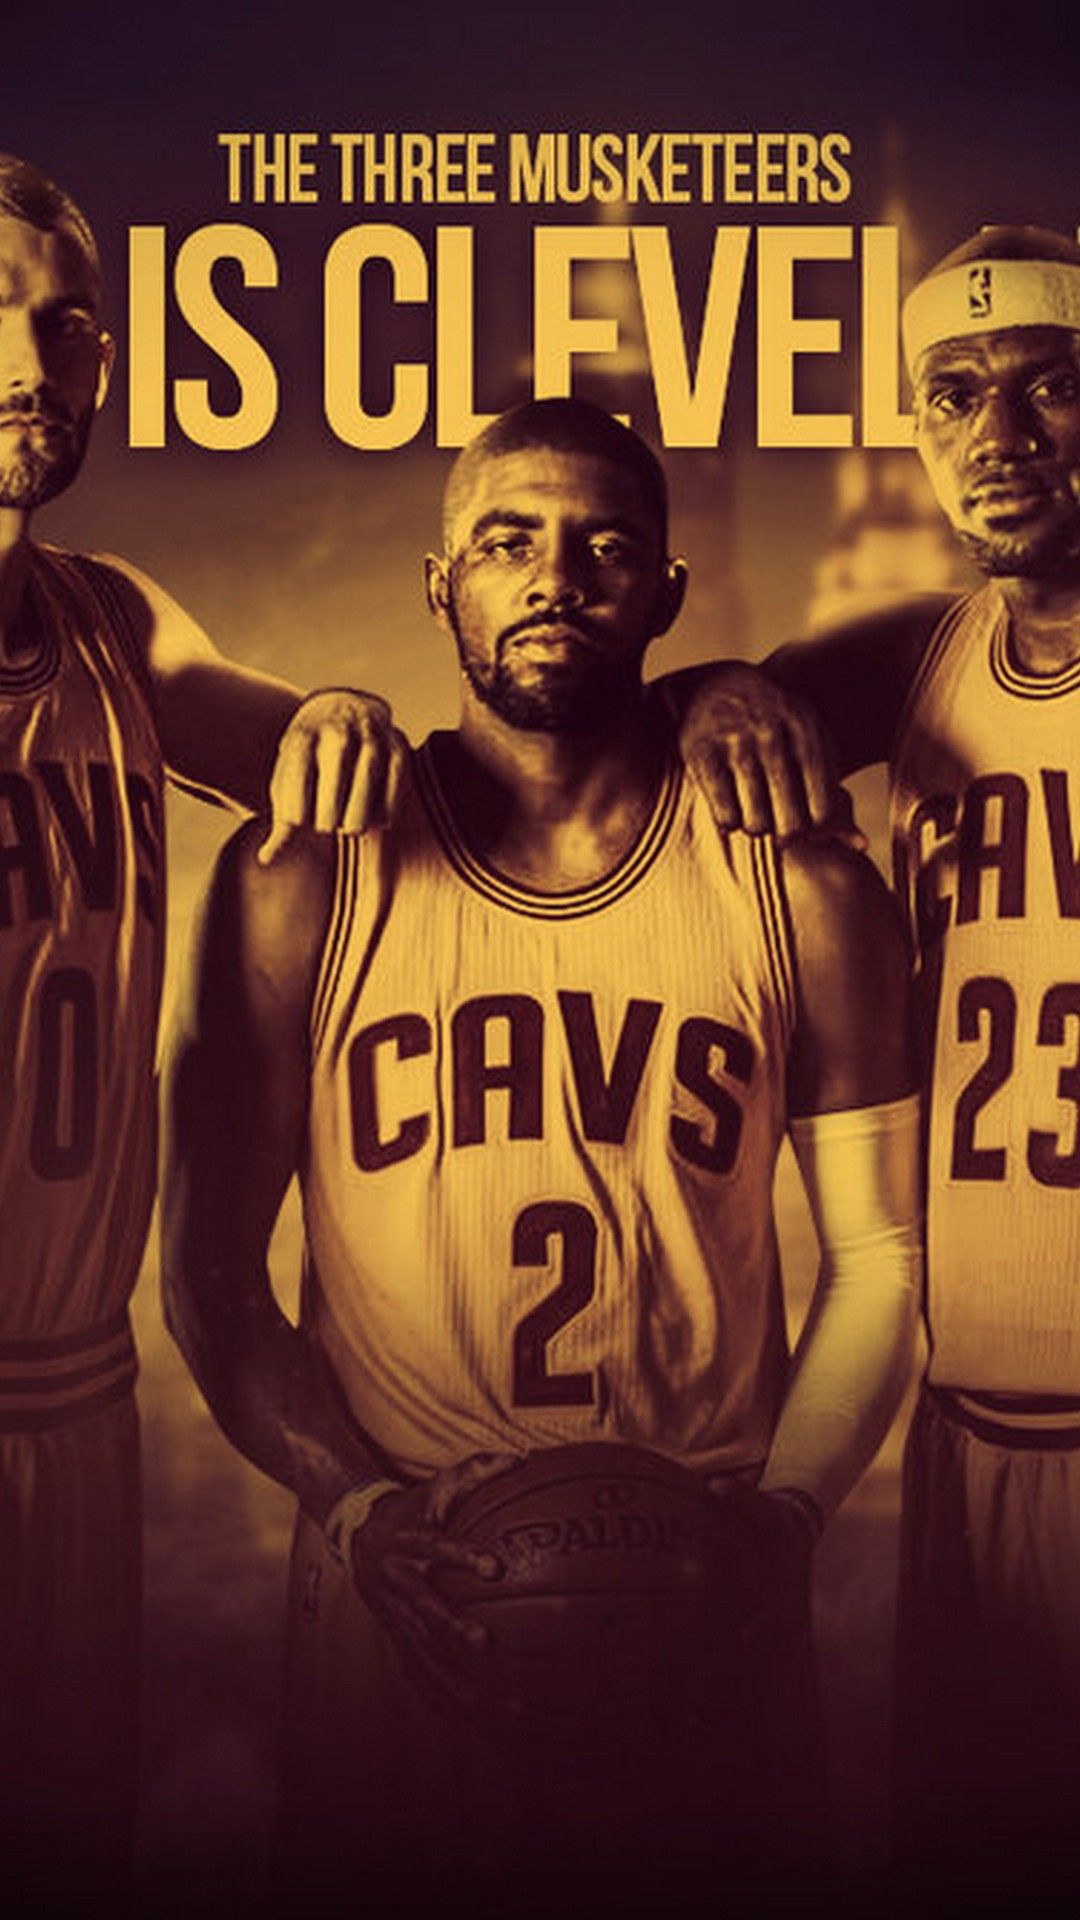 Cleveland Cavaliers Nba Mobile Wallpaper Hd 2021 Basketball Wallpaper Cavaliers Nba Basketball Senior Pictures Basketball Wallpaper